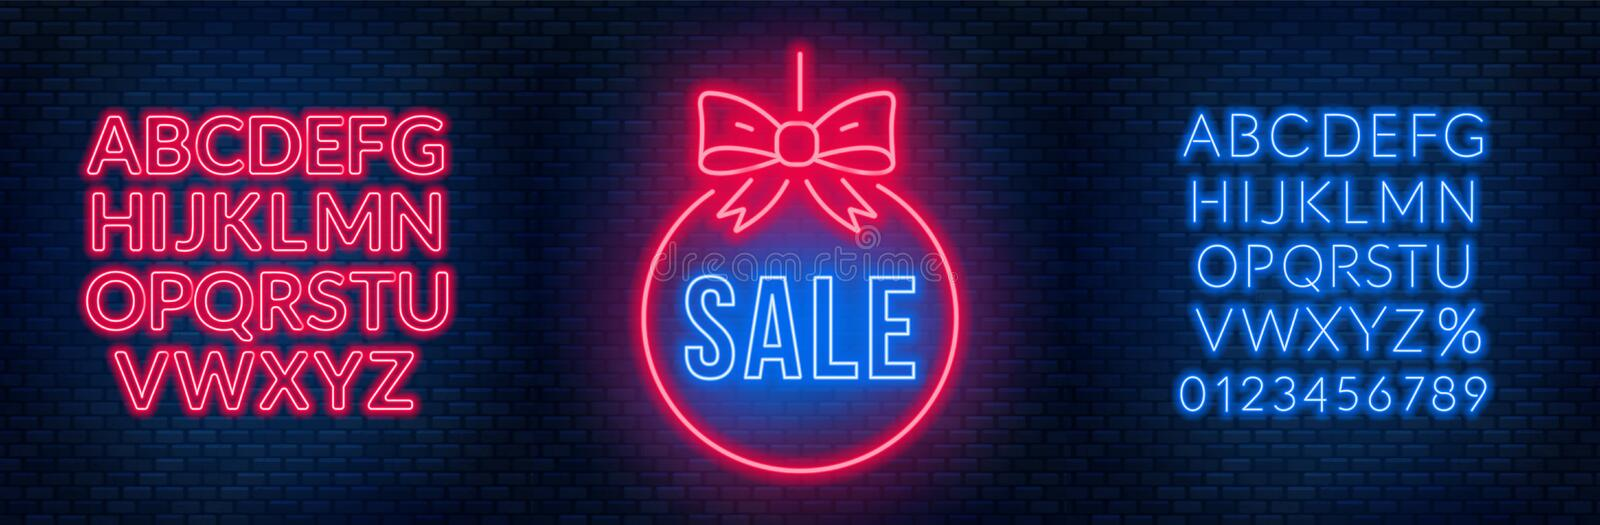 Sale neon sign and fonts on a dark background. Template discounts and offers. vector illustration